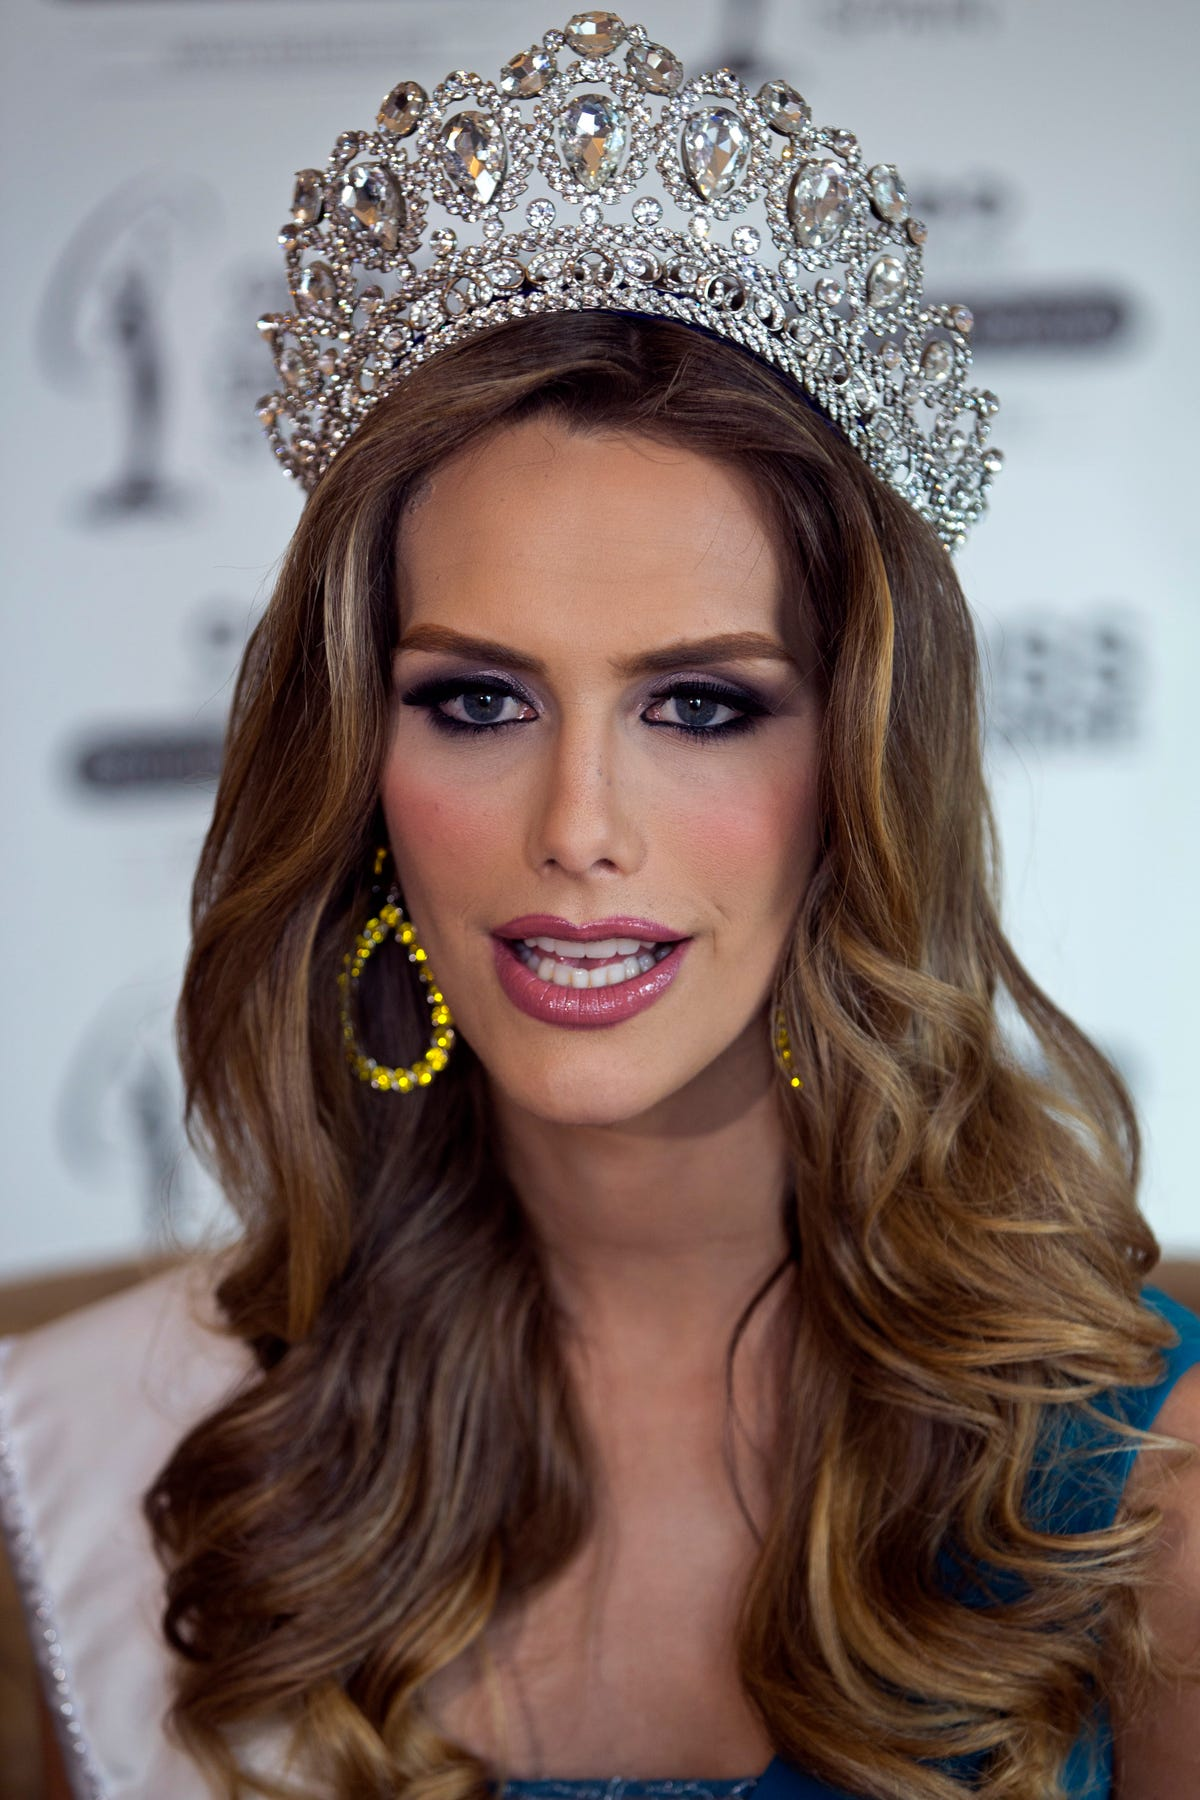 Meet Miss Universe's first transgender contestant, Angela Ponce